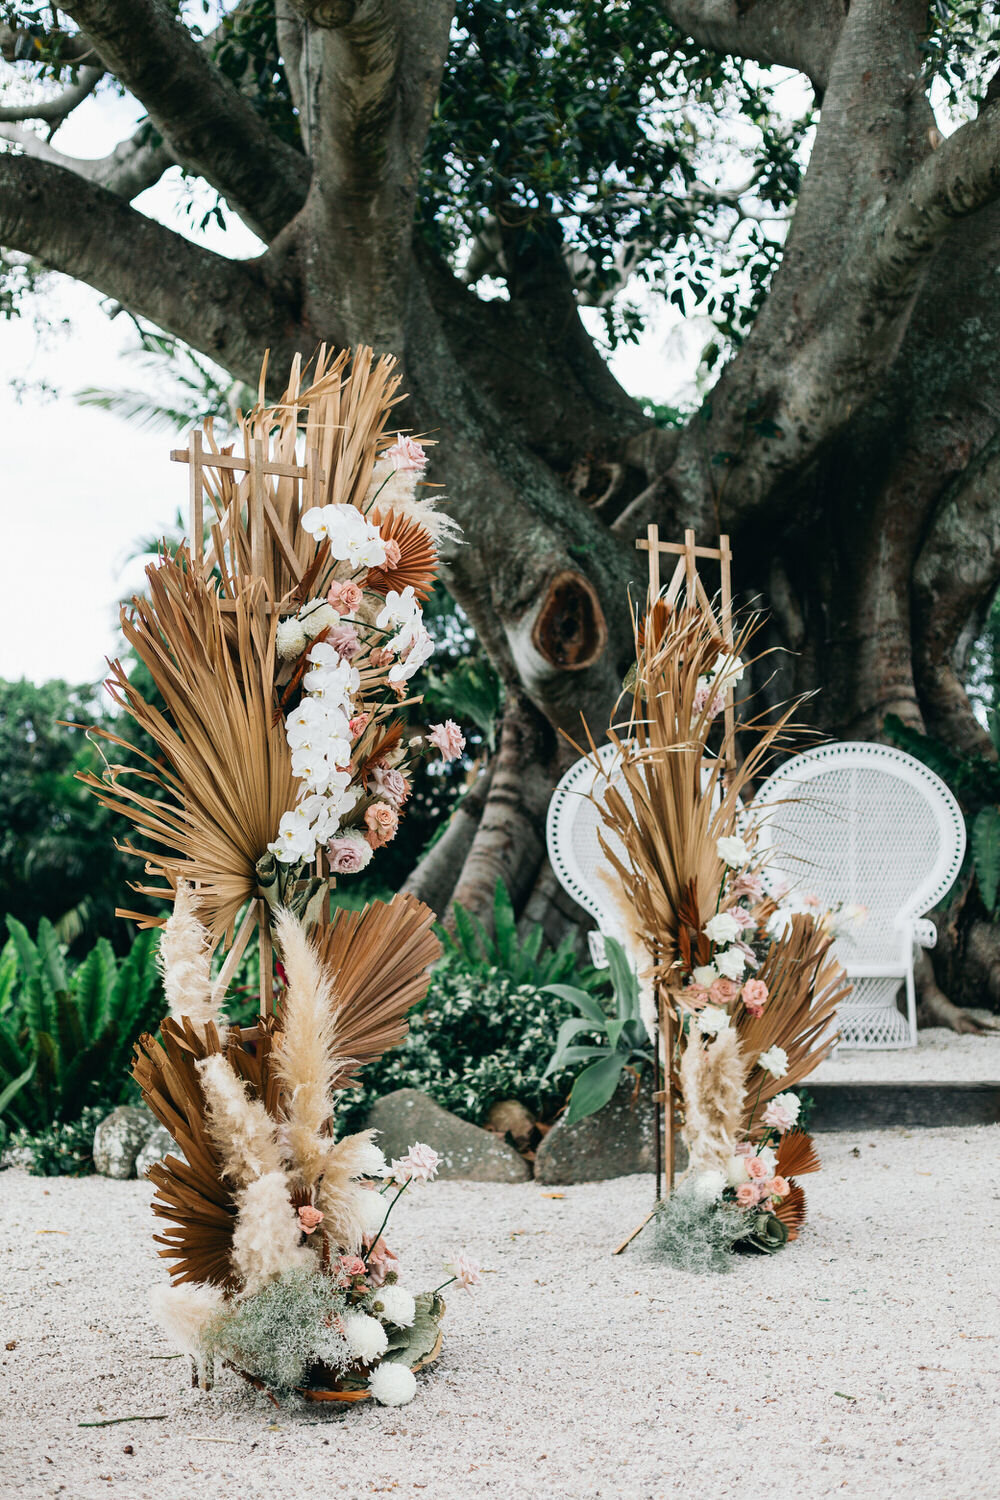 Chic Byron Bay Wedding with Dried Botanicals from Ruffled